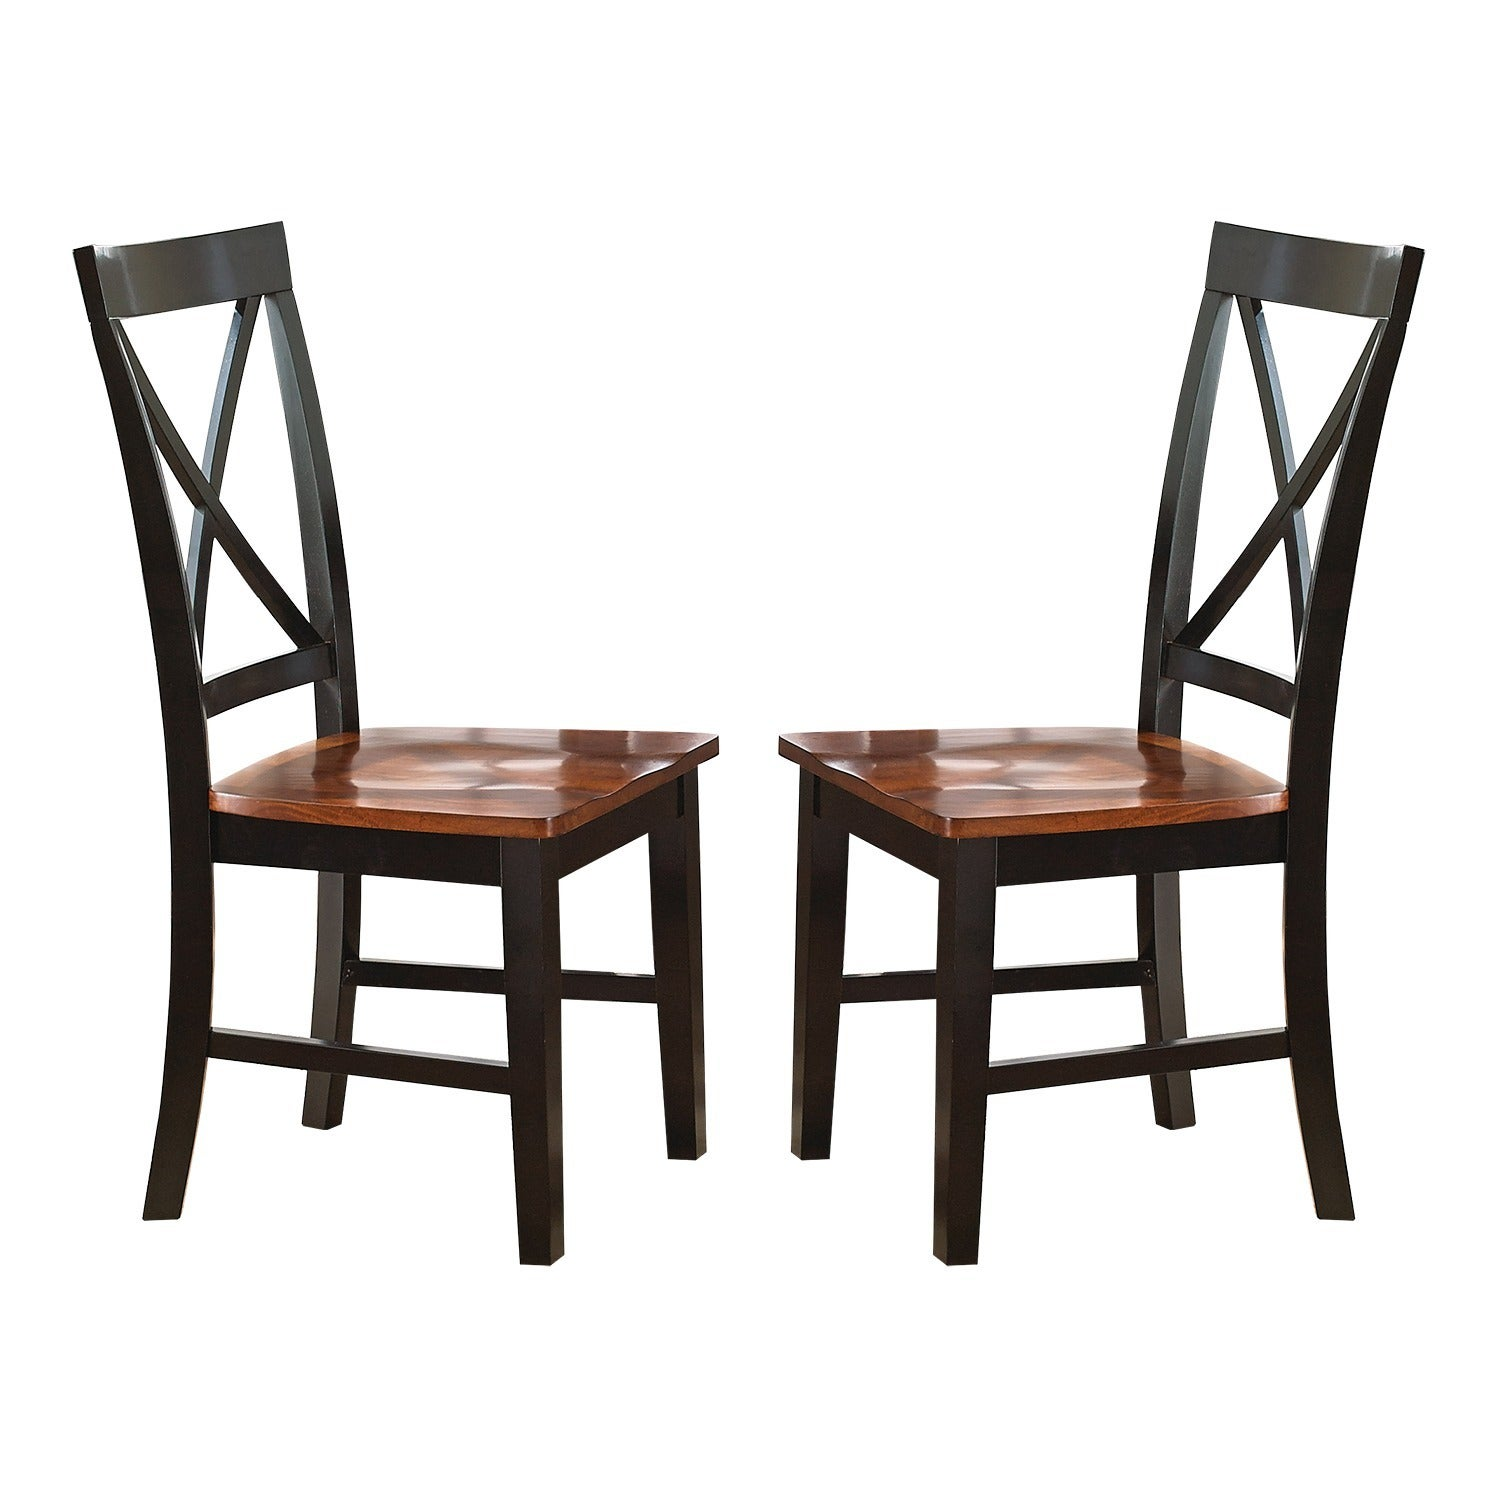 Greyson Living Keaton Black/Oak Solid Wood Dining Chair (Set Of 2)   Free  Shipping Today   Overstock.com   16062294